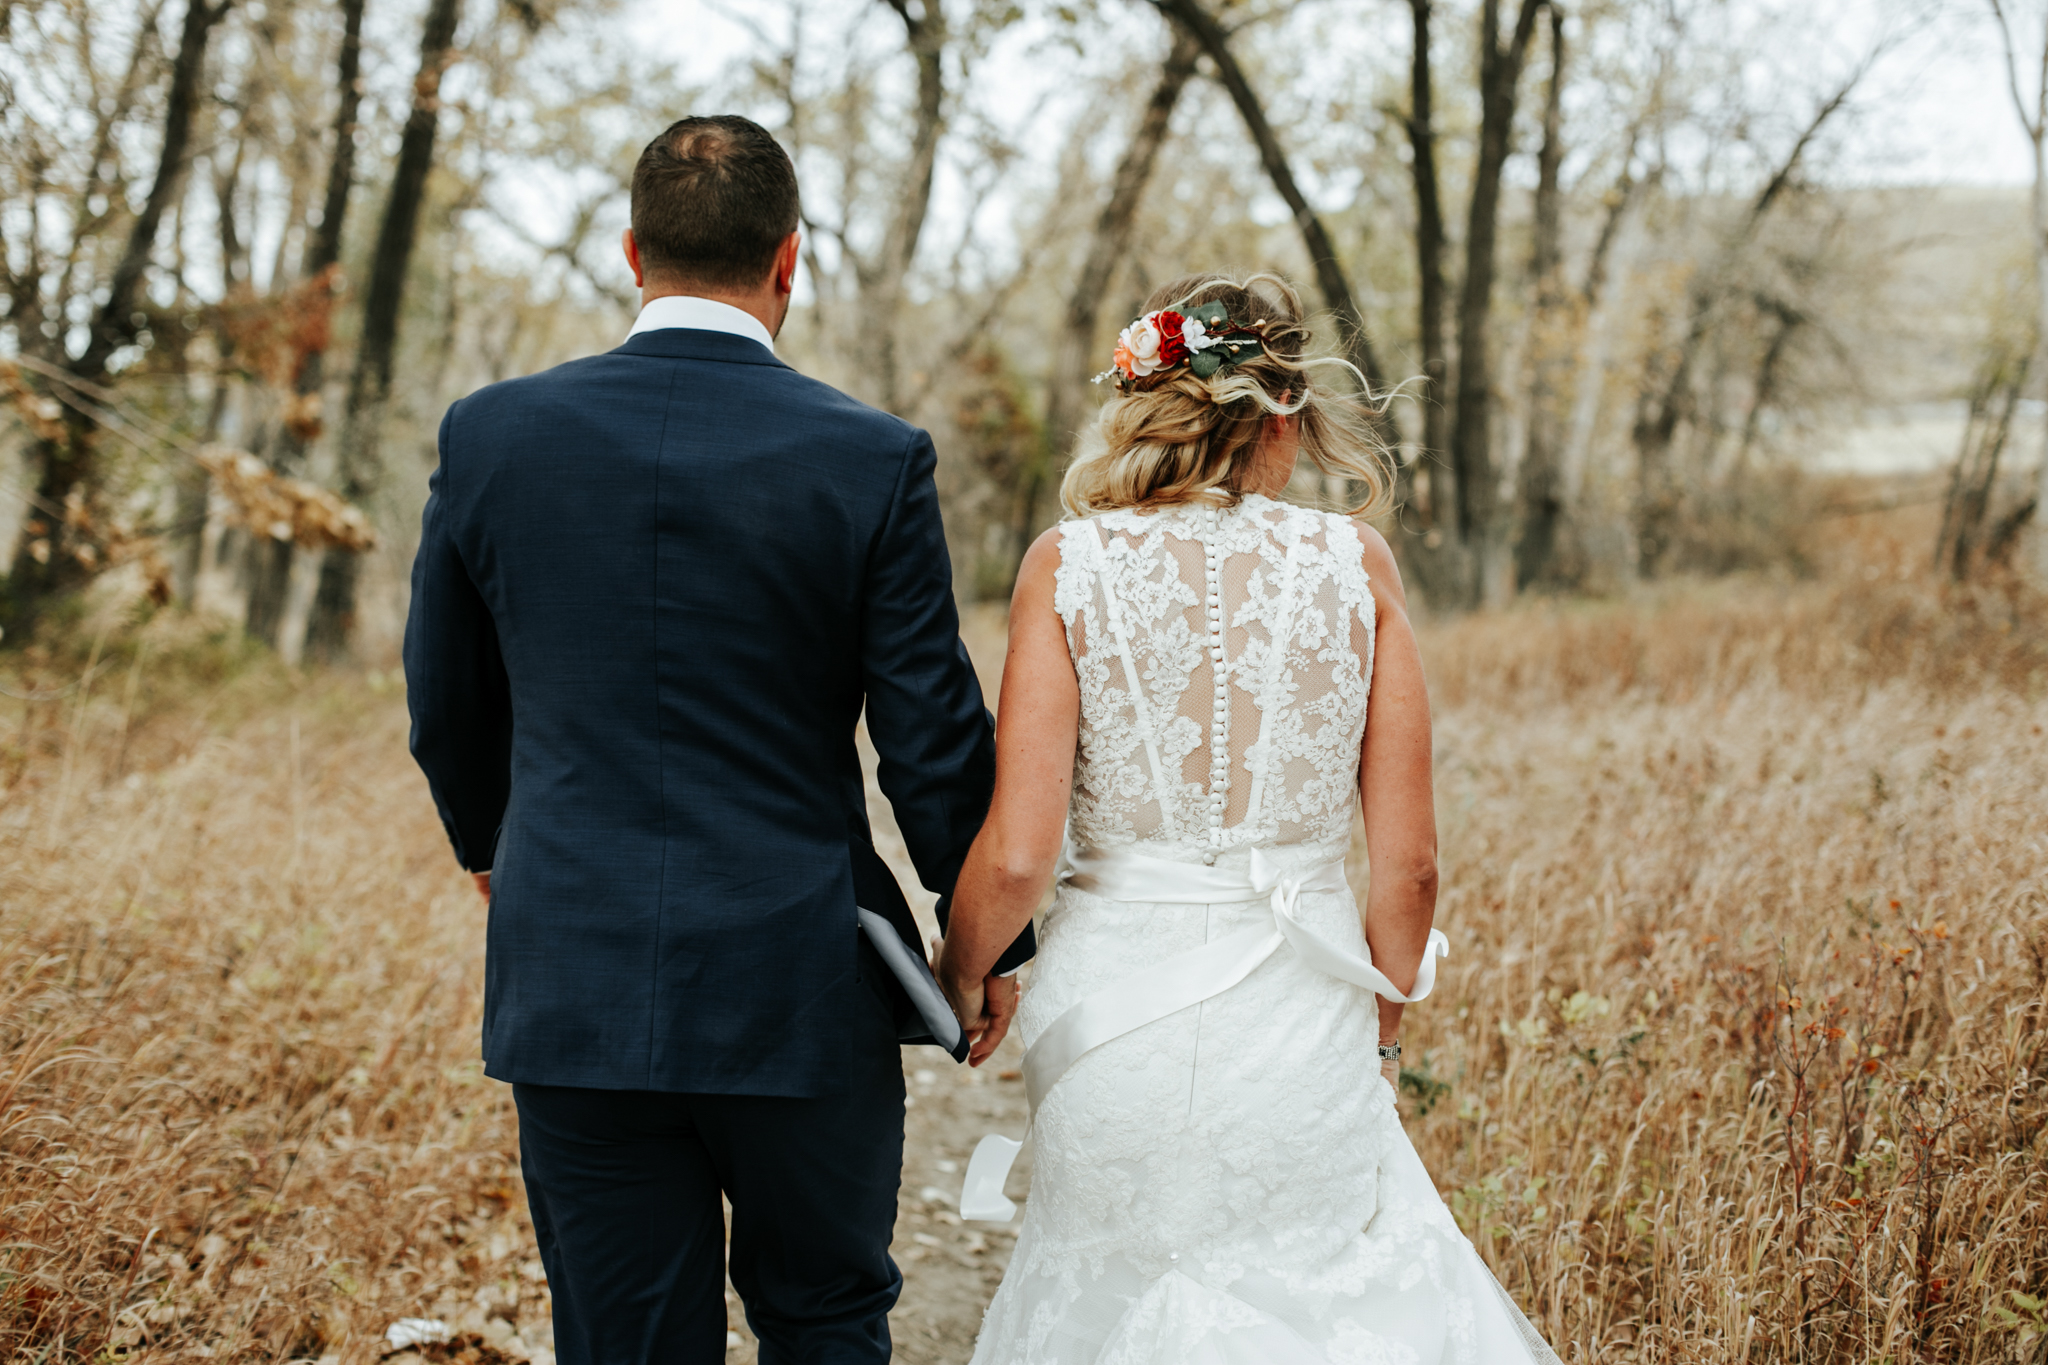 lethbridge-photographer-love-and-be-loved-photography-designed-to-dwell-wedding-katie-kelly-photo-image-picture-46.jpg